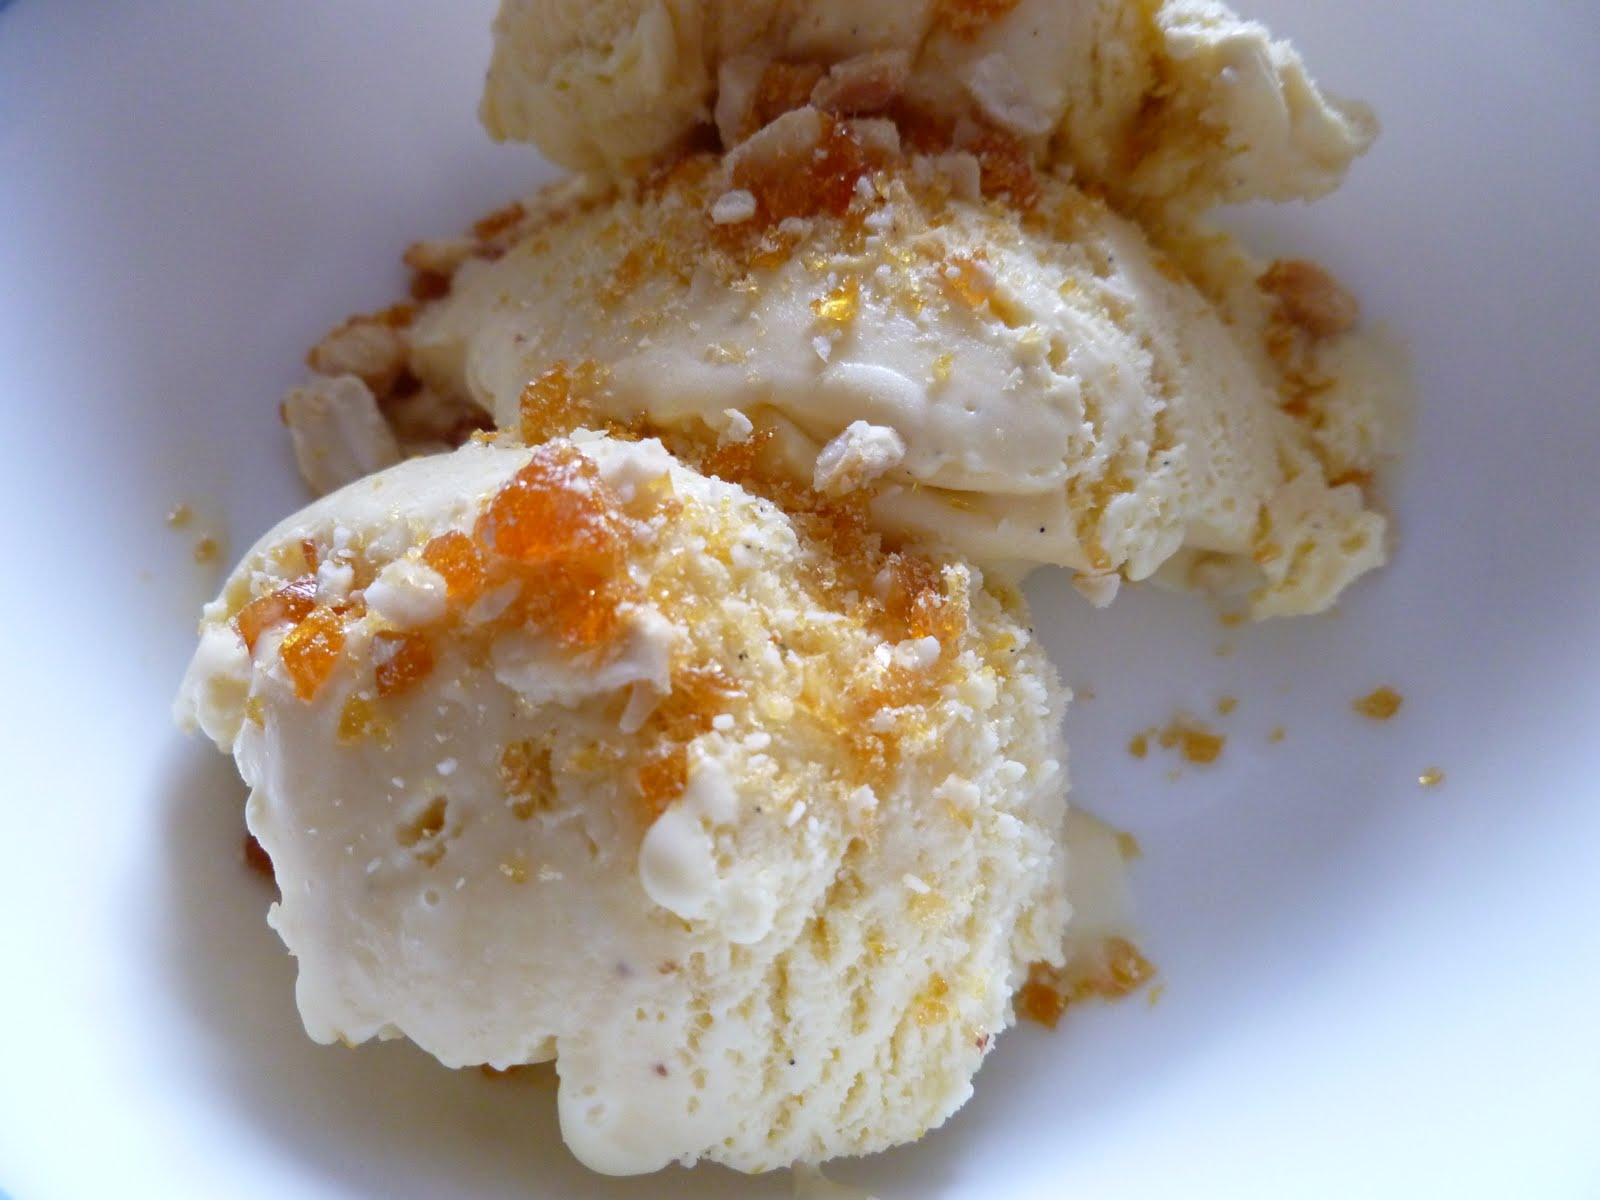 Good Eats from India: Butterscotch ice cream